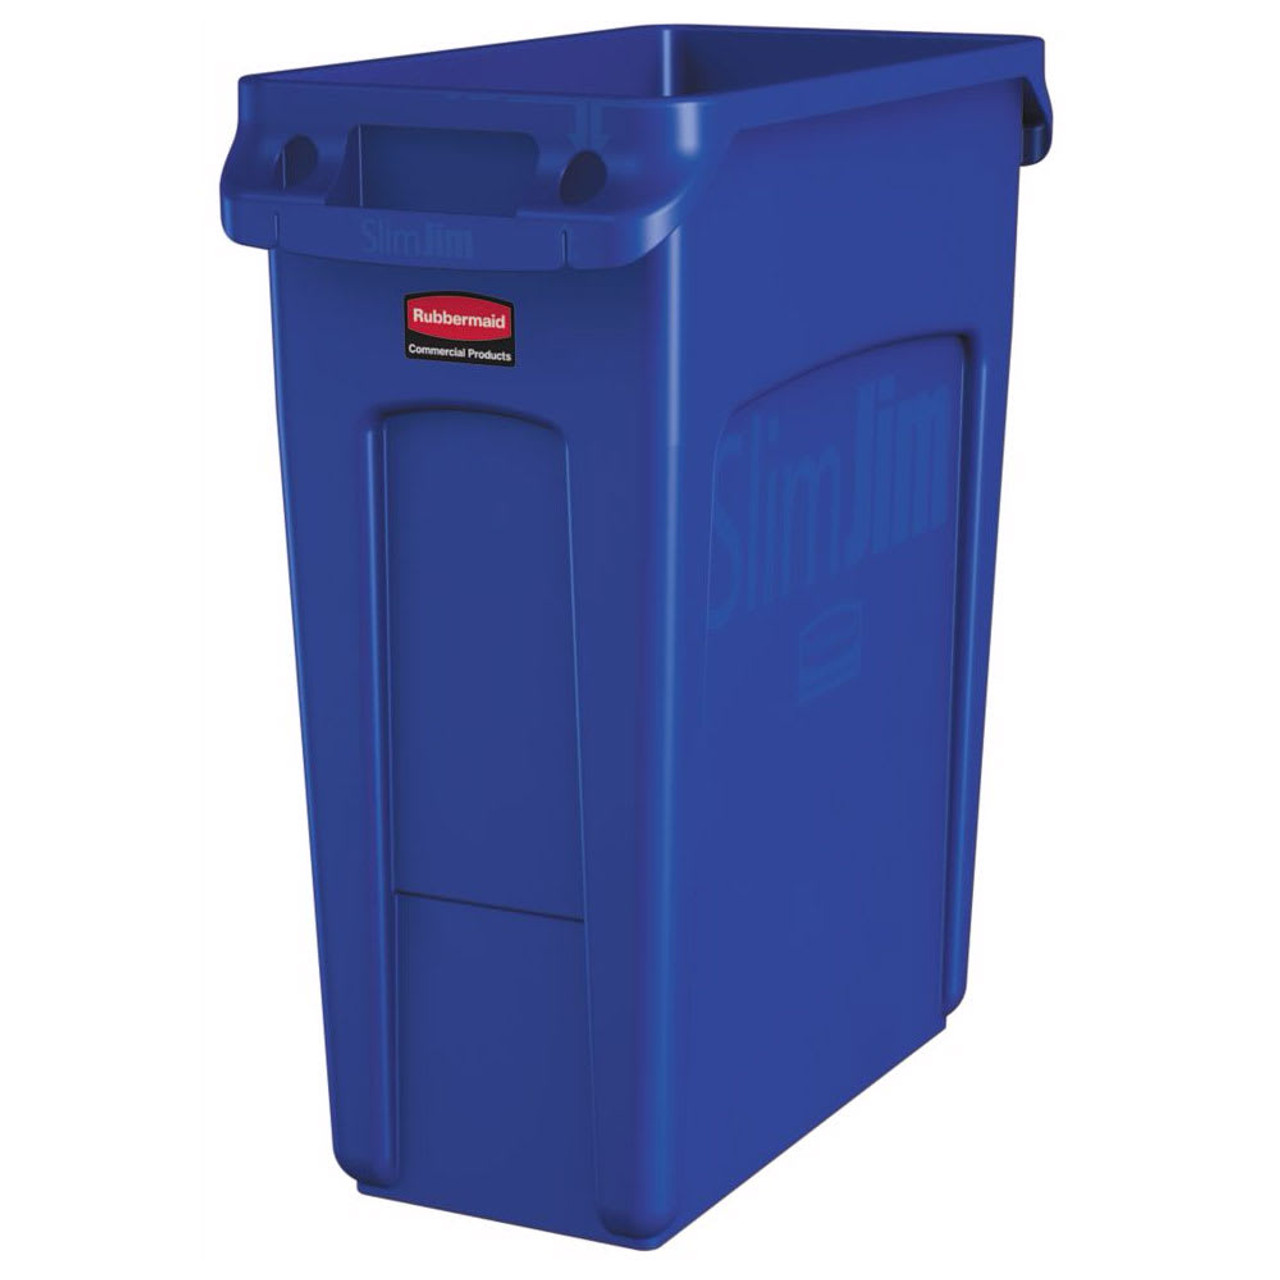 Rubbermaid Slim Jim With Venting Channels 60L - Blue